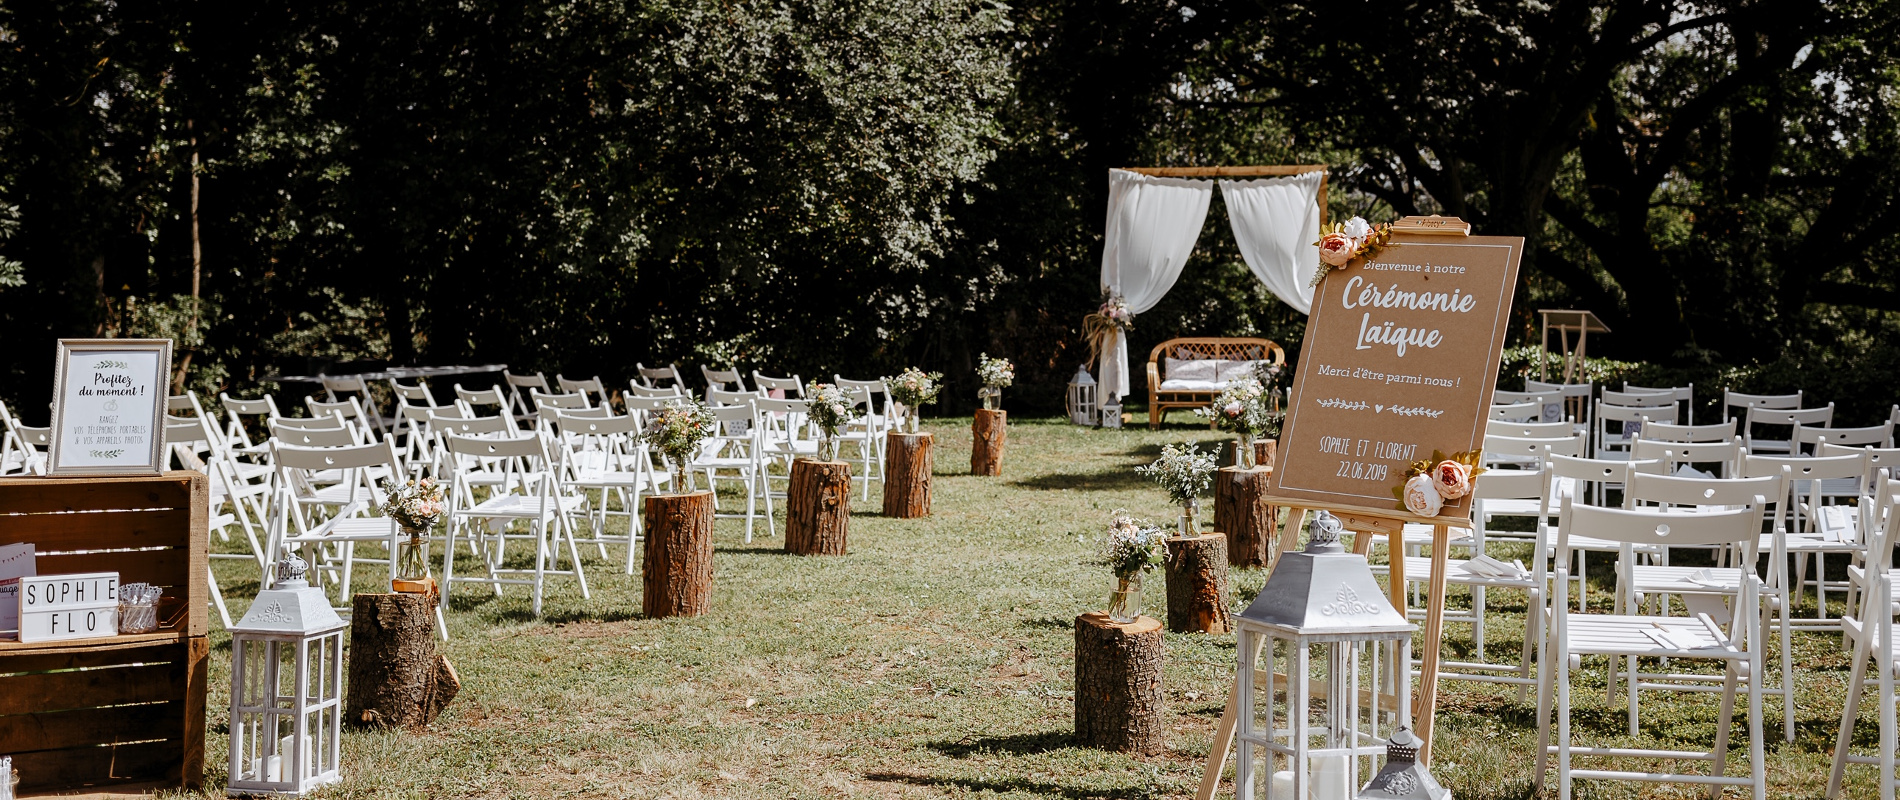 Decoration of an outdoor wedding ceremony organized in Château de Bois Rigaud's garden, with white chairs.